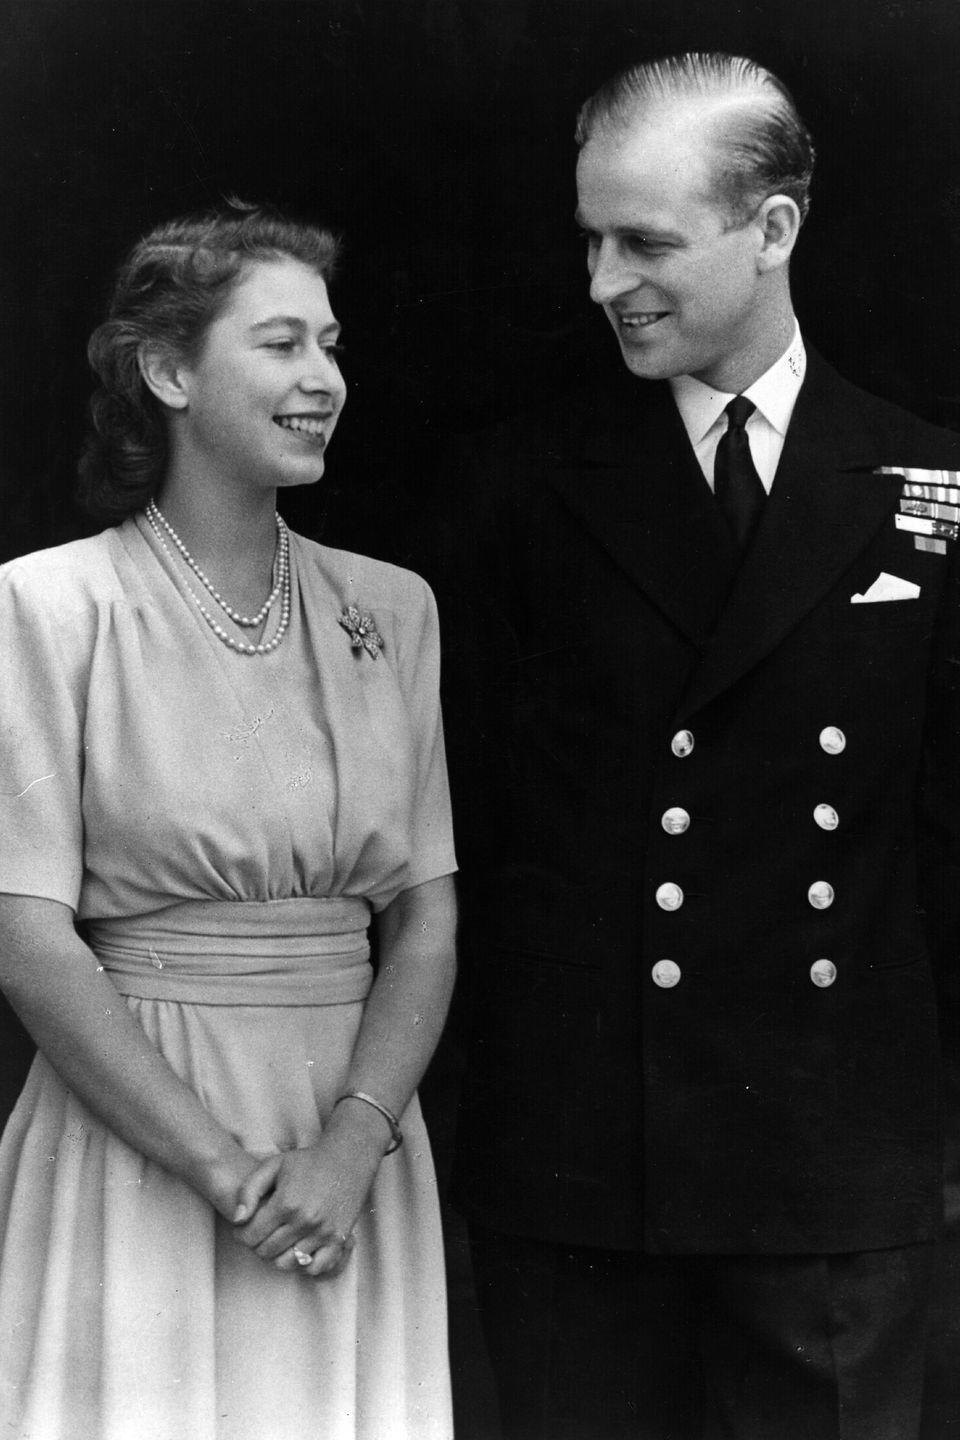 <p>With her then-fiancé, Prince Phillip, the Duke of Edinburgh.</p>